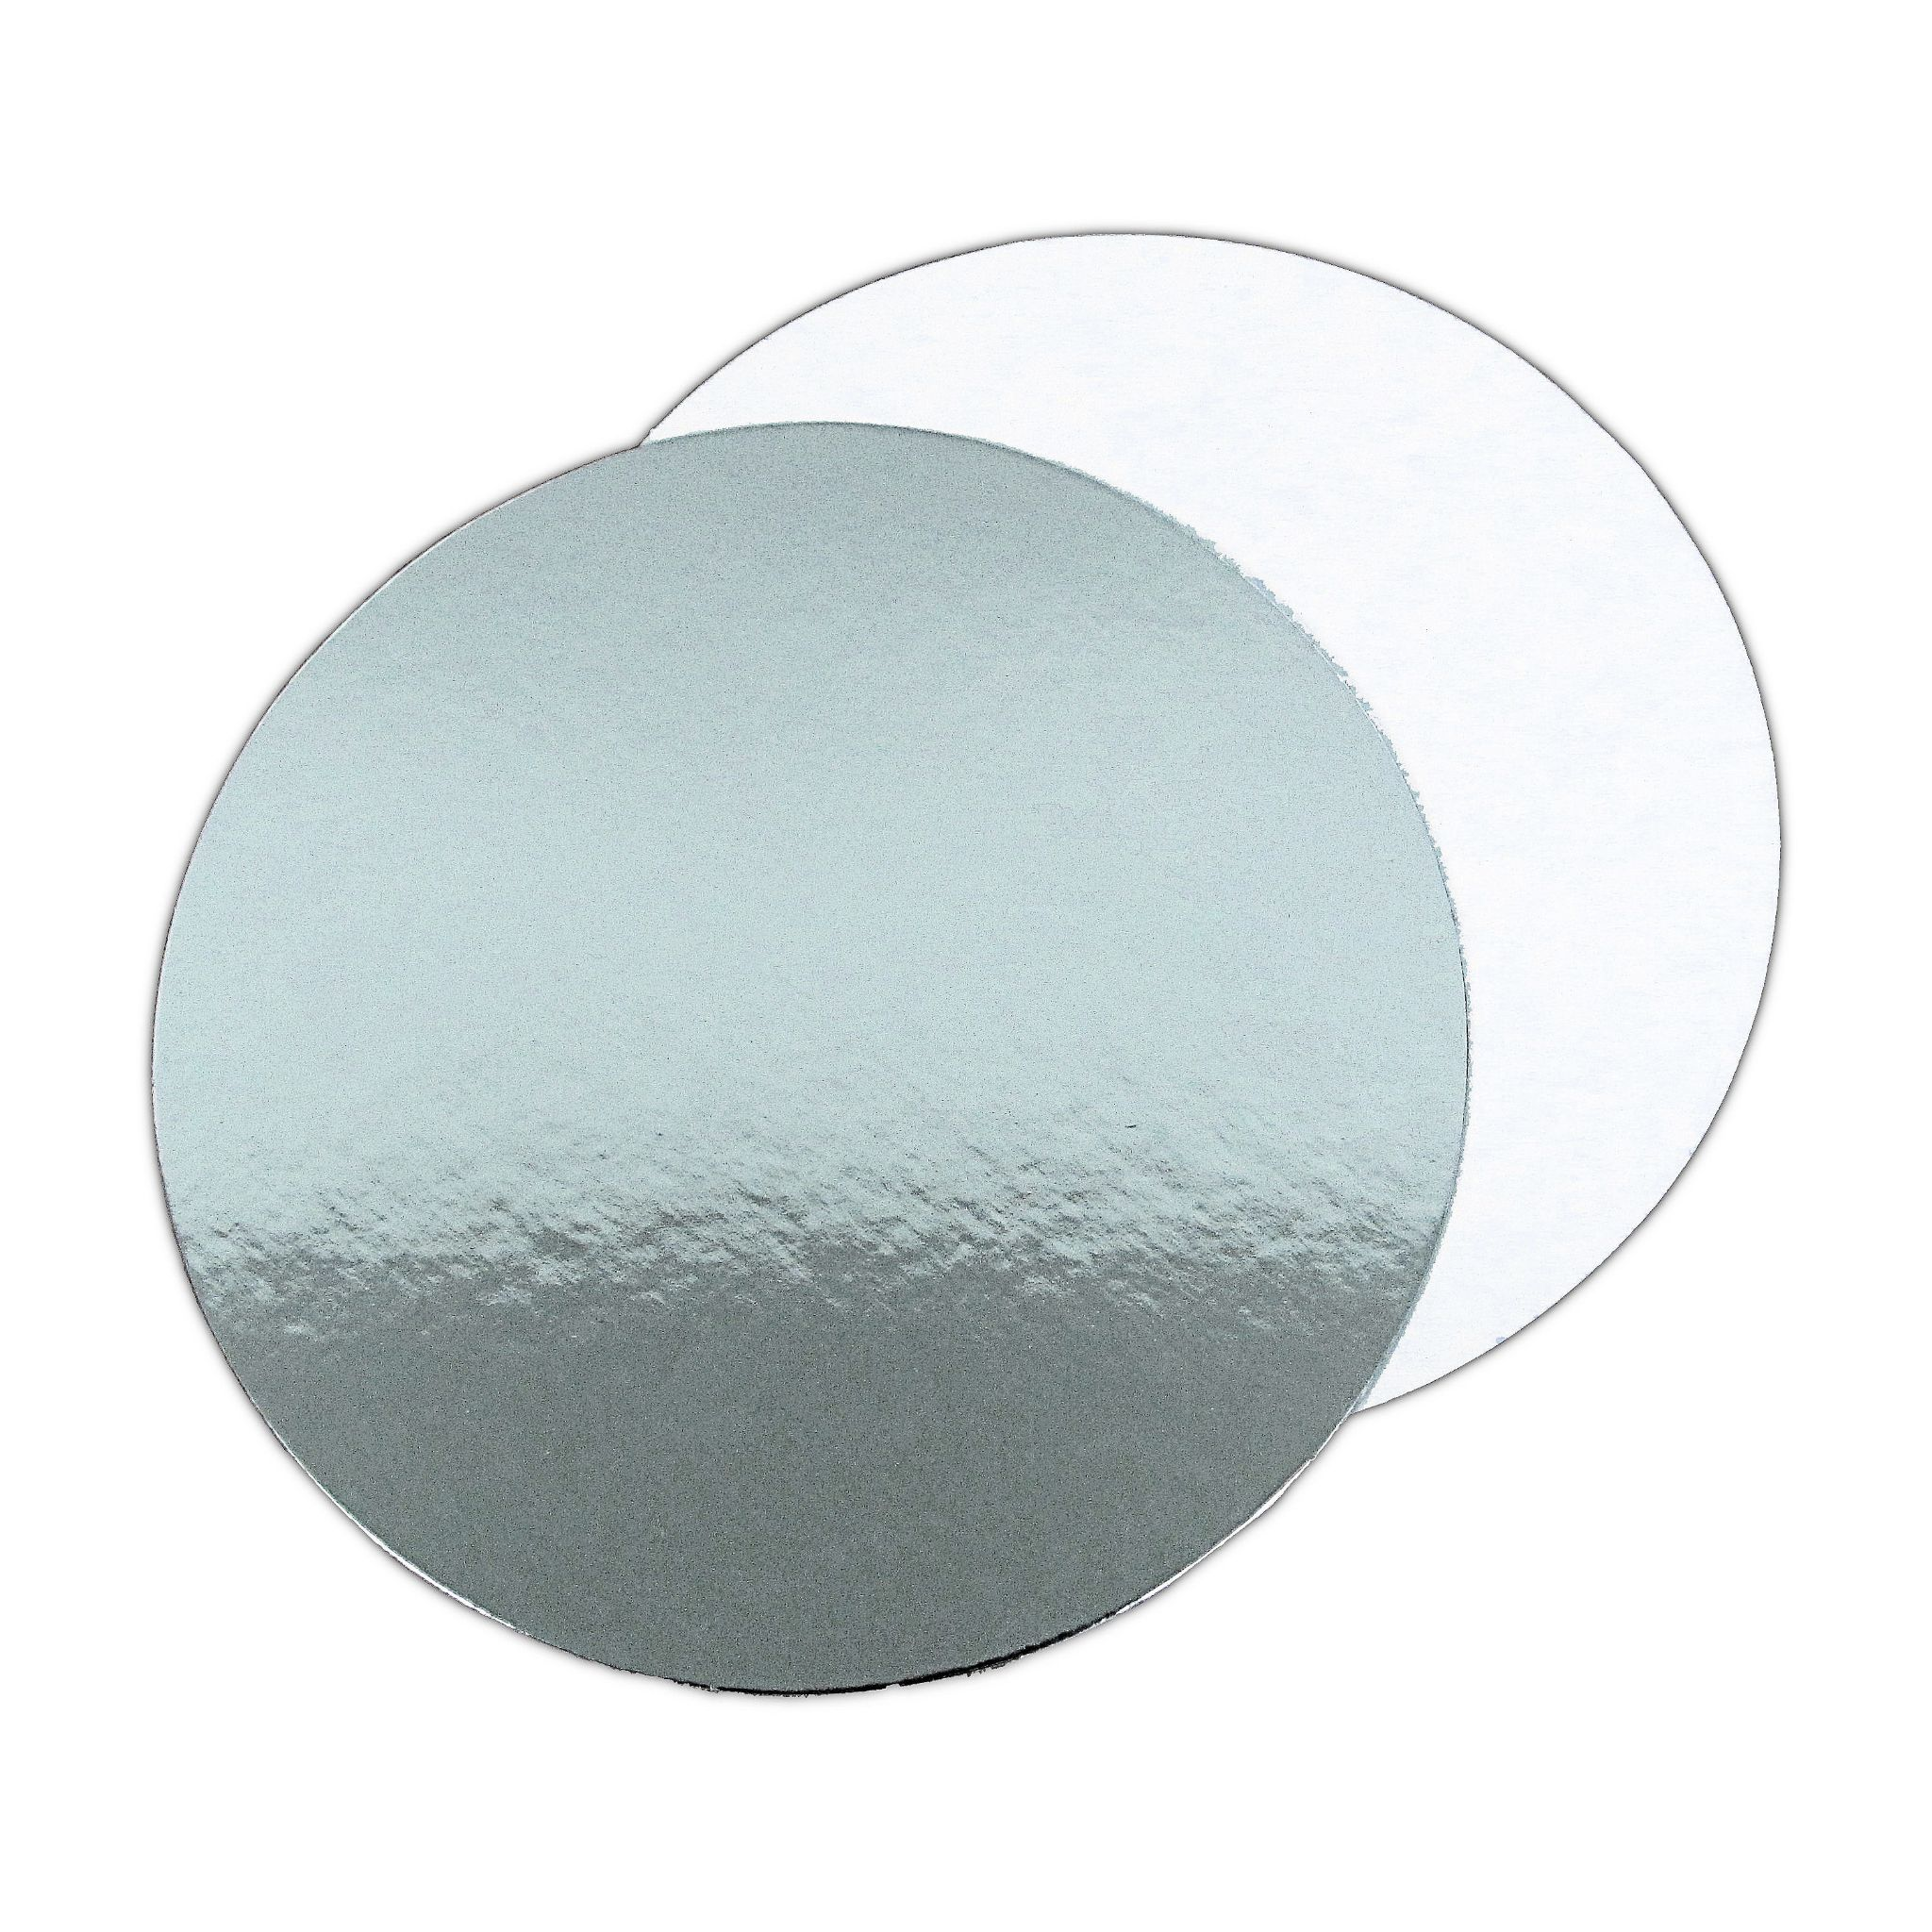 SCC03025 - 3'' Round Silver/White Cut Edge Cake Boards x 25